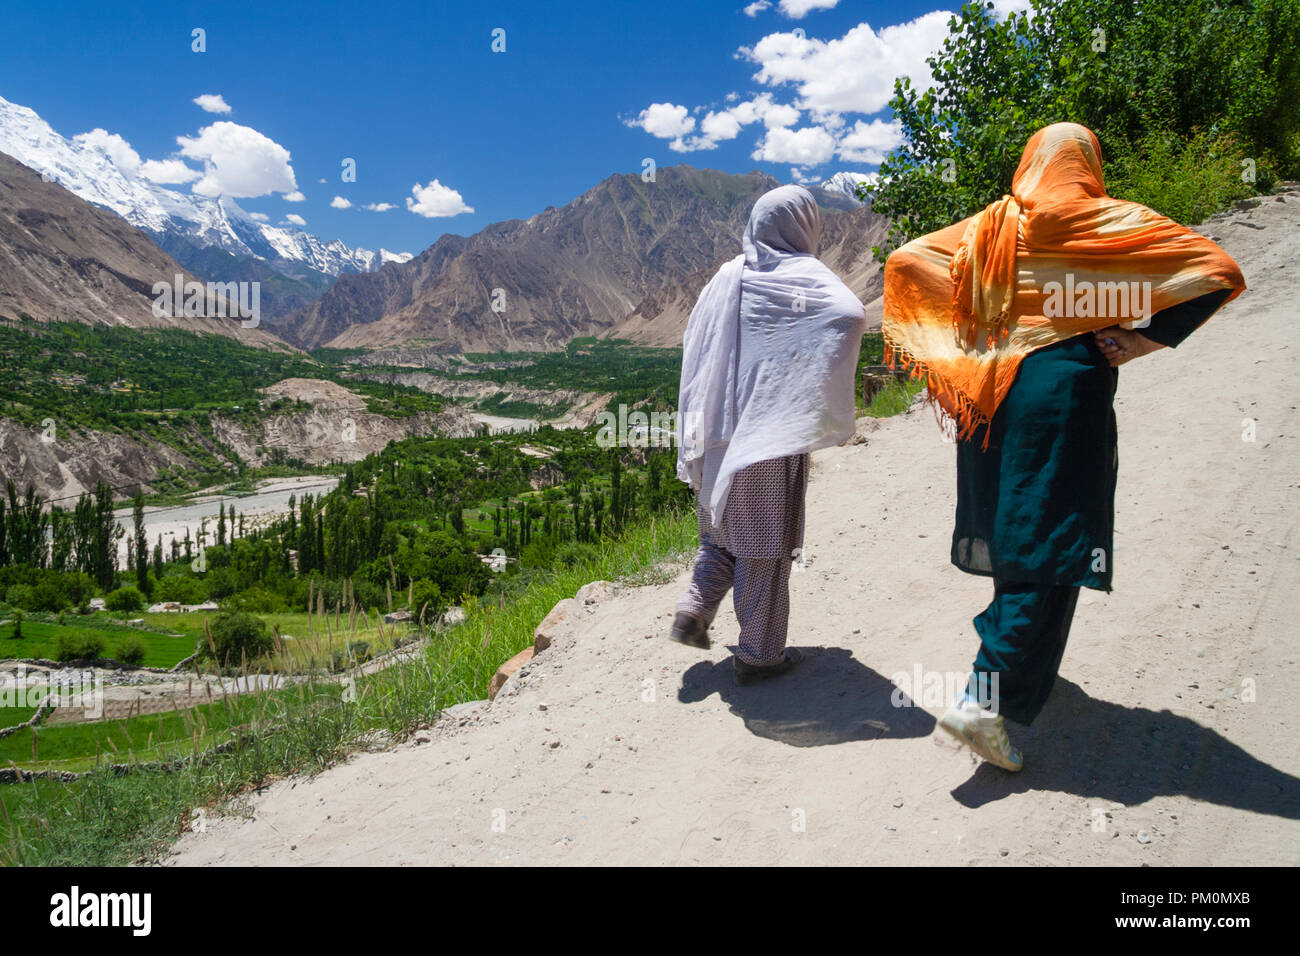 Karimabad, Hunza Valley, Gilgit-Baltistan, Pakistan : Two young women walk towards the mountain town of Karimabad (formerly Baltit) the capital of the - Stock Image